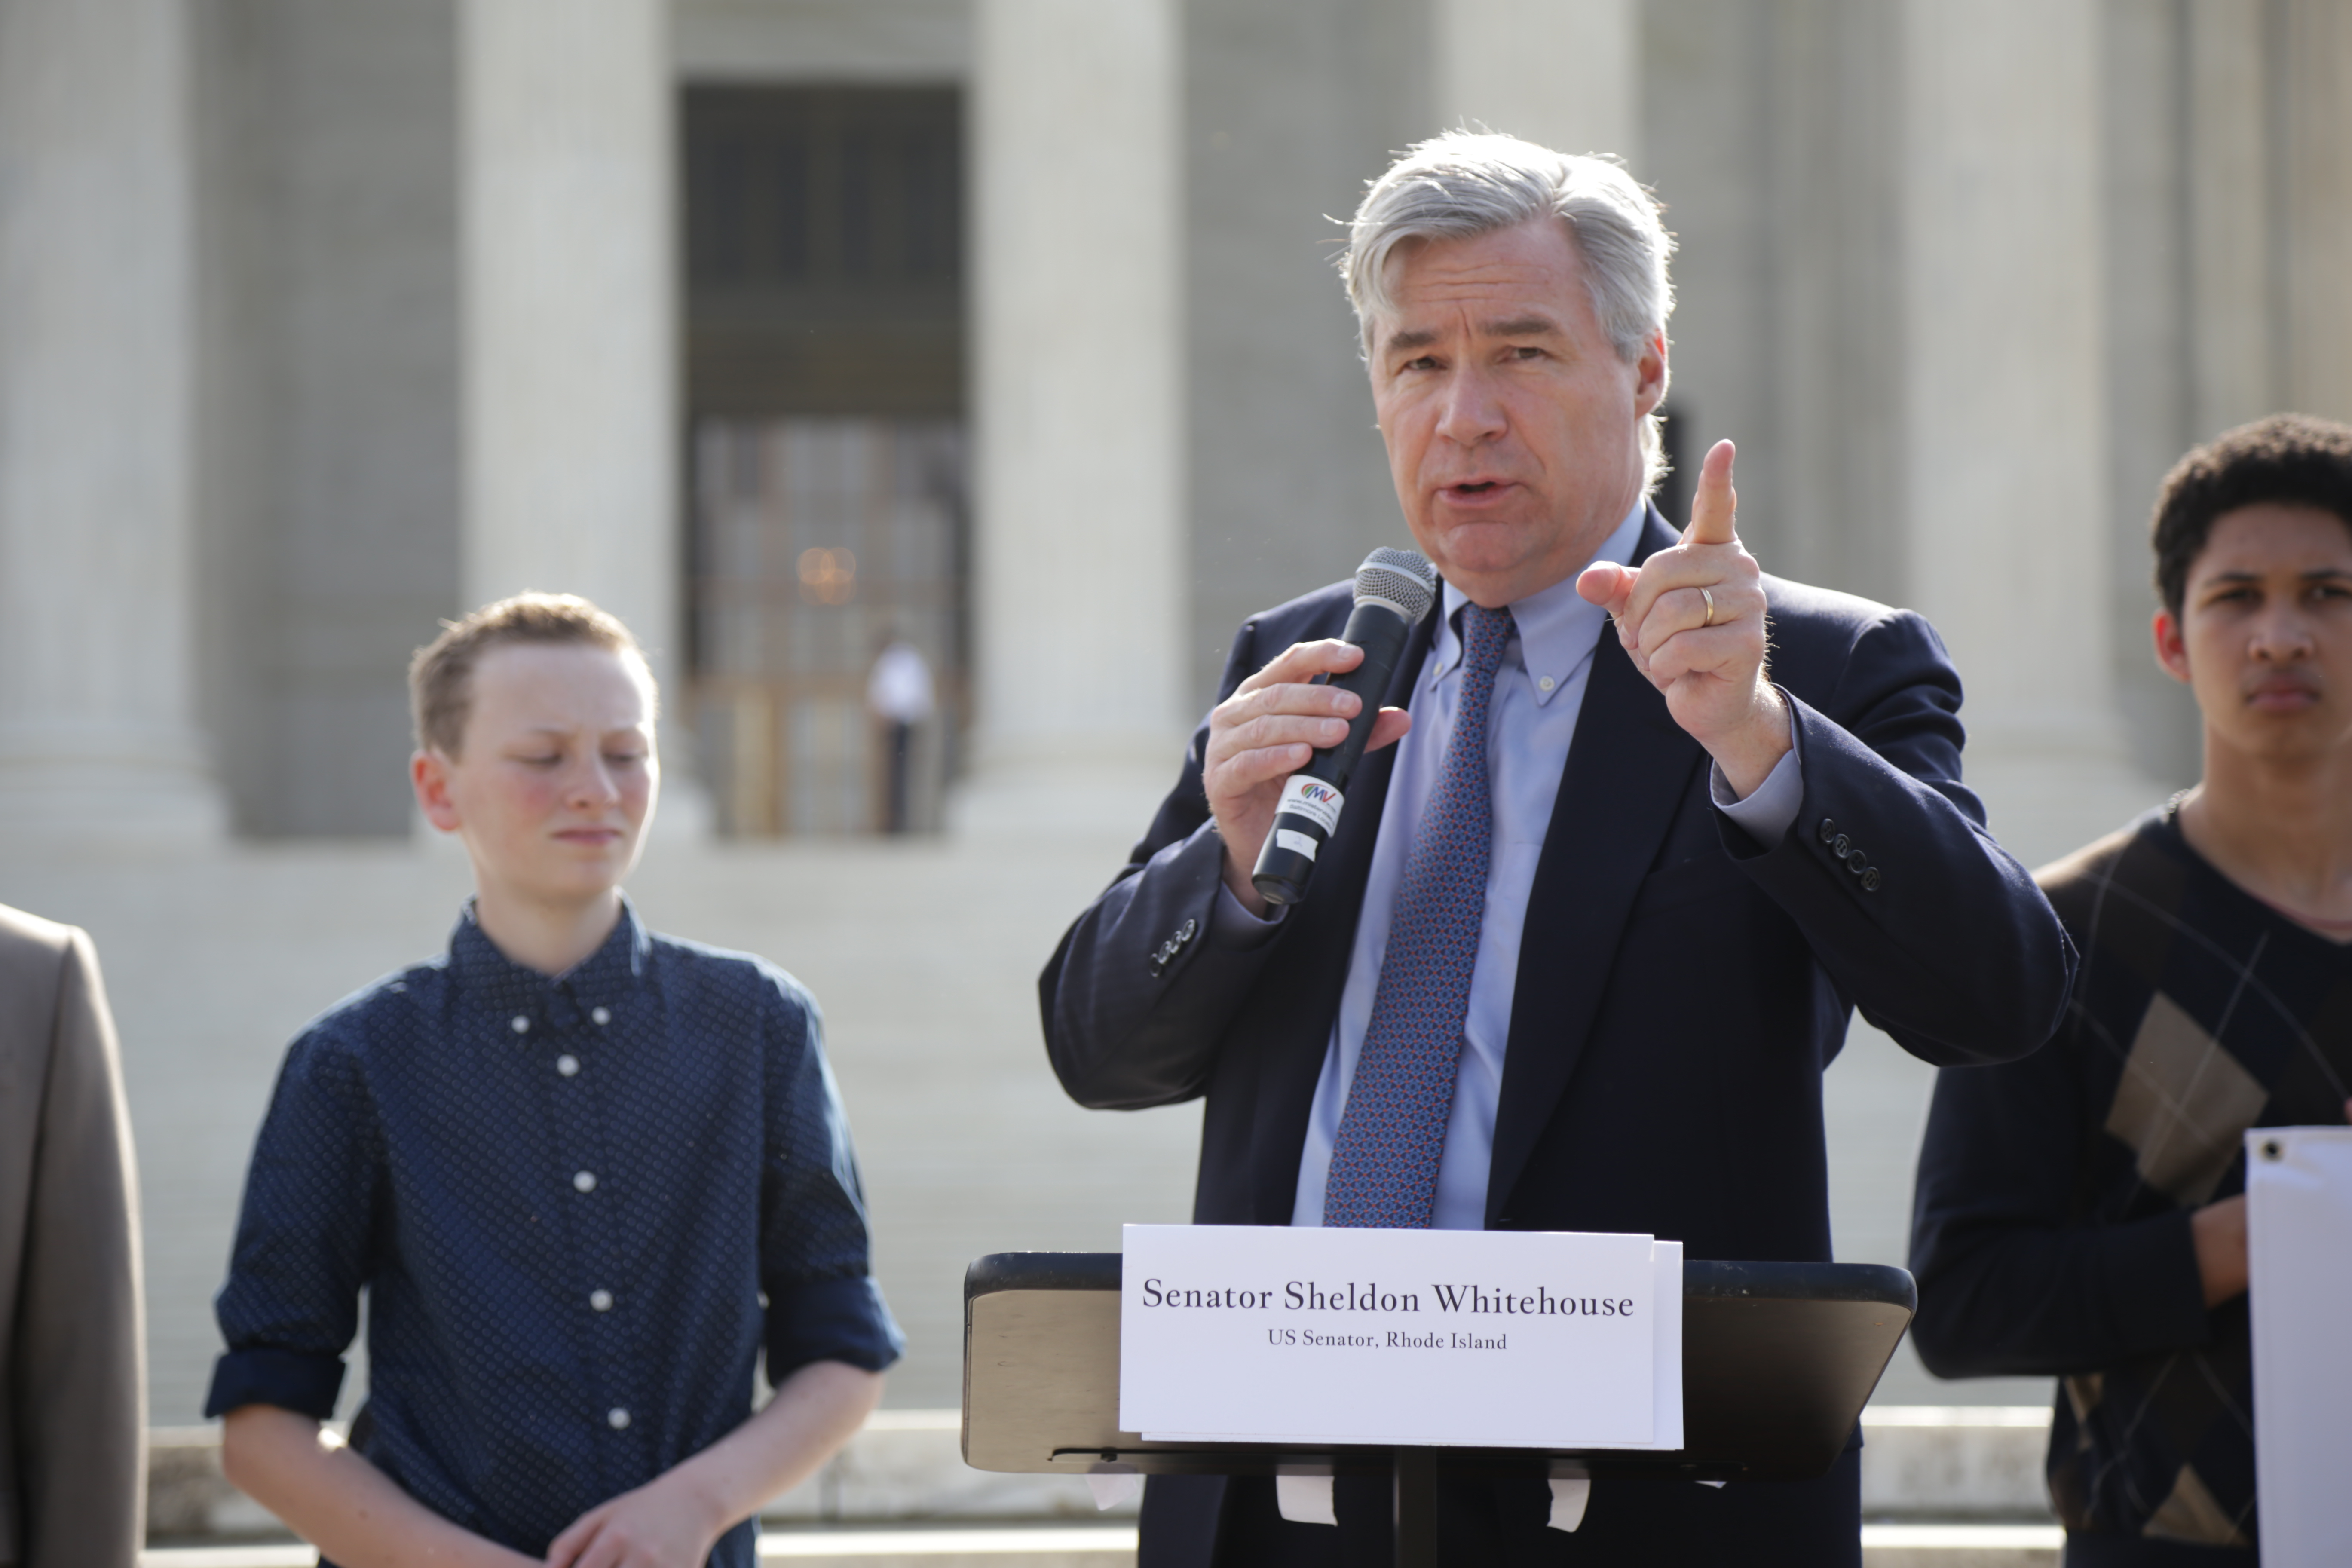 Sen. Sheldon Whitehouse (D-RI) points at the US Capitol Building while speaking in front of the Supreme Court. (Photo by John Light)